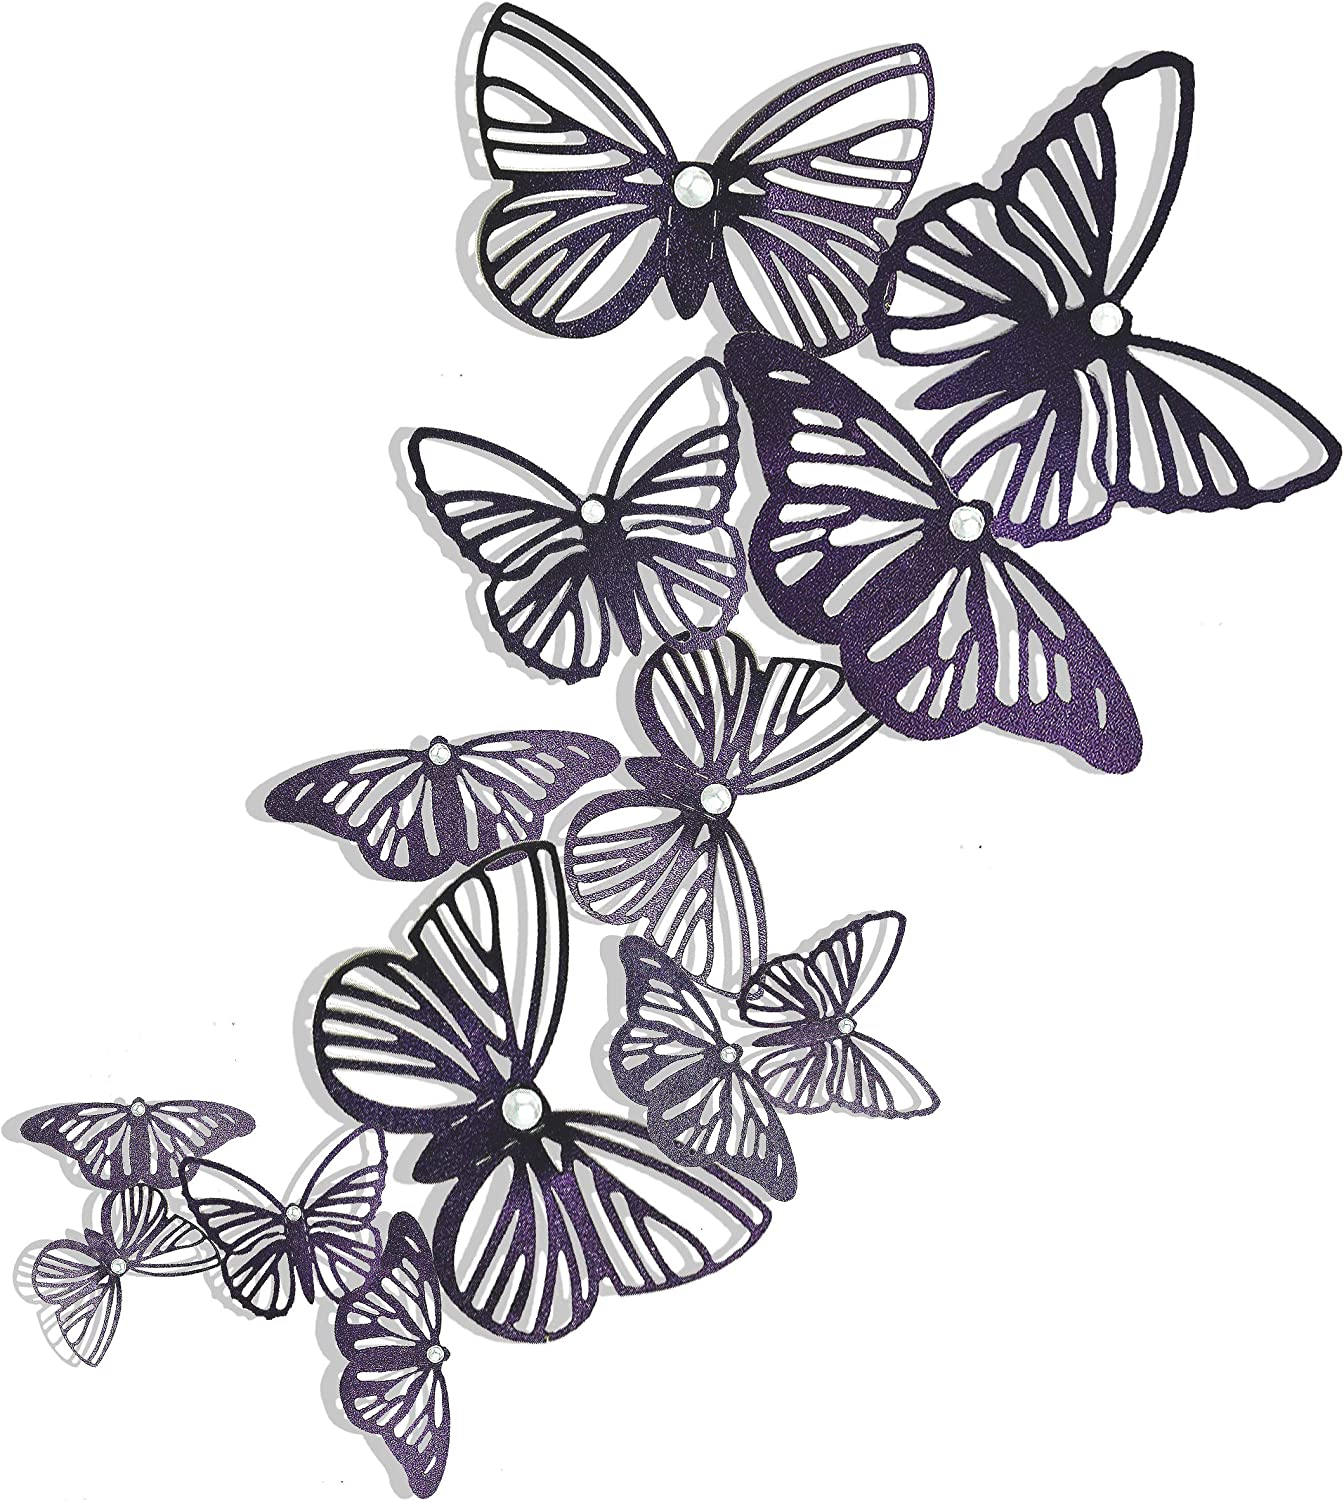 pinkblume Dark Purple Butterfly Decorations 3D Butterflies Wall Art Decals Stickers DIY Removable Paper Pearl Butterflies for Kids Room Living Room Nursery Bedroom Showcase Wall Decor(36PCS)